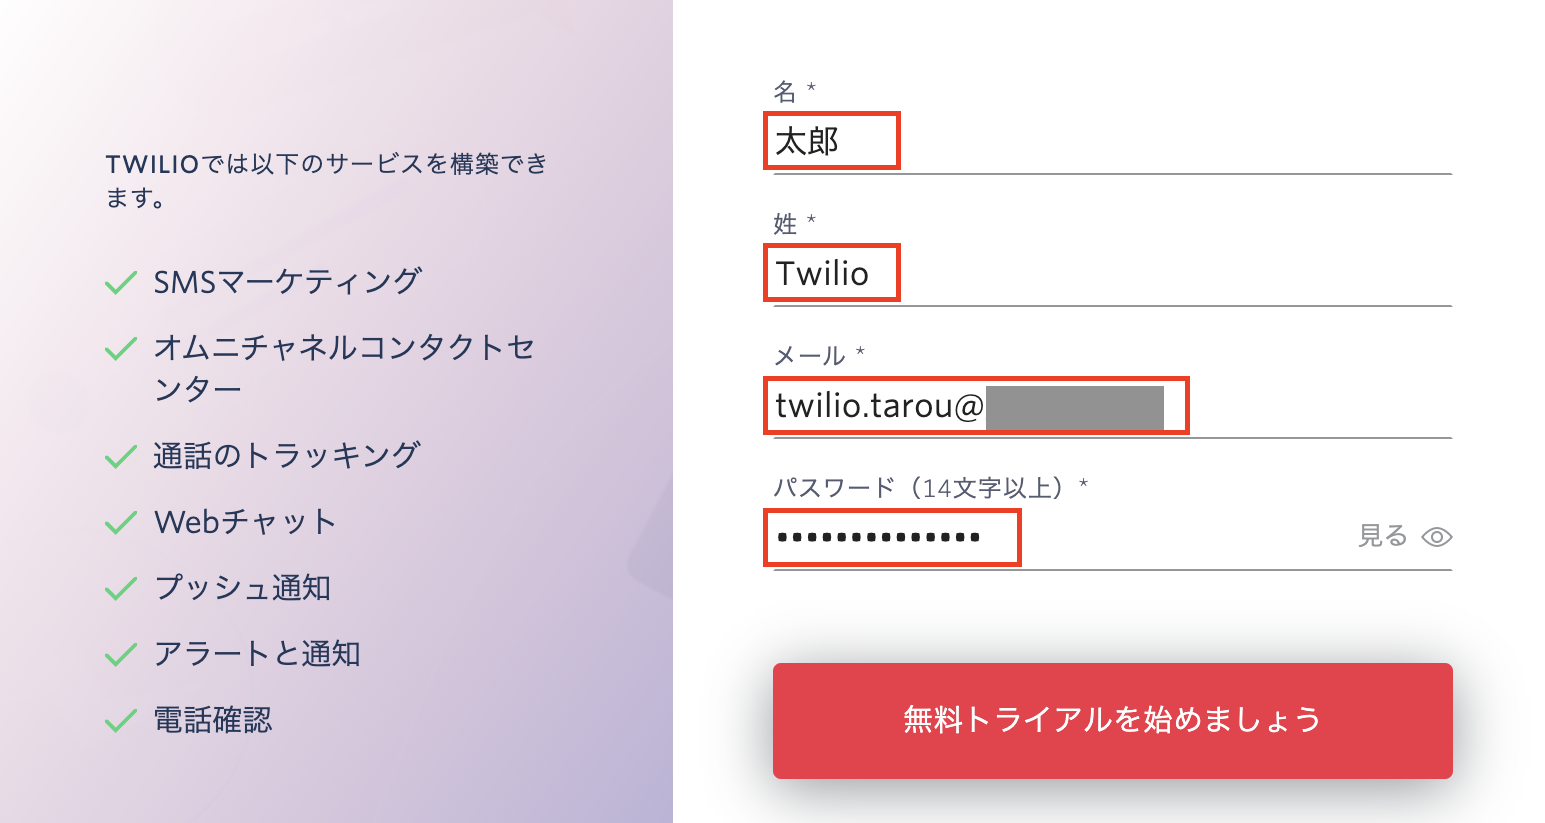 twilio-account-page